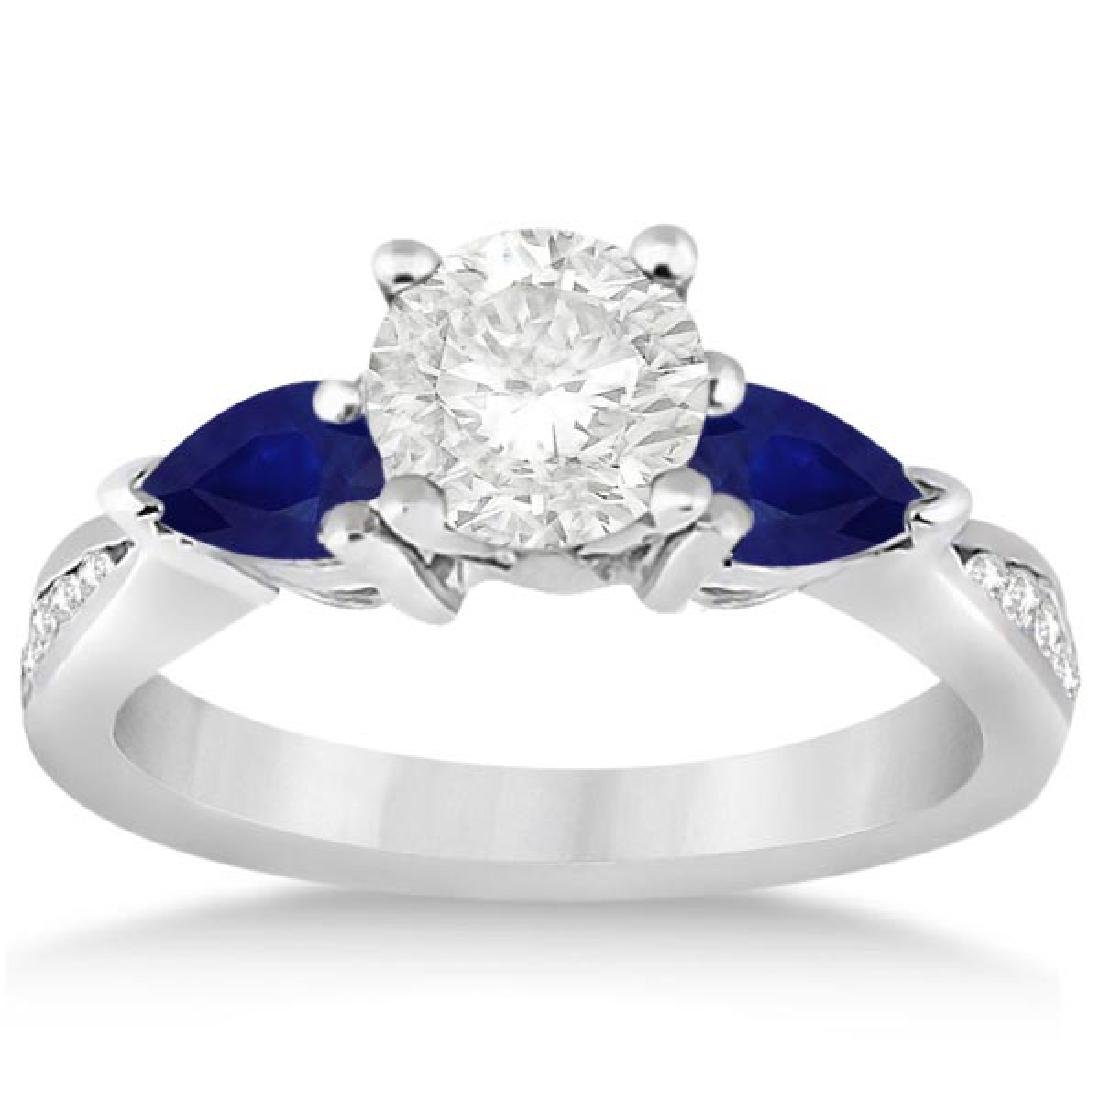 Diamond and Pear Blue Sapphire Engagement Ring 18k Whit